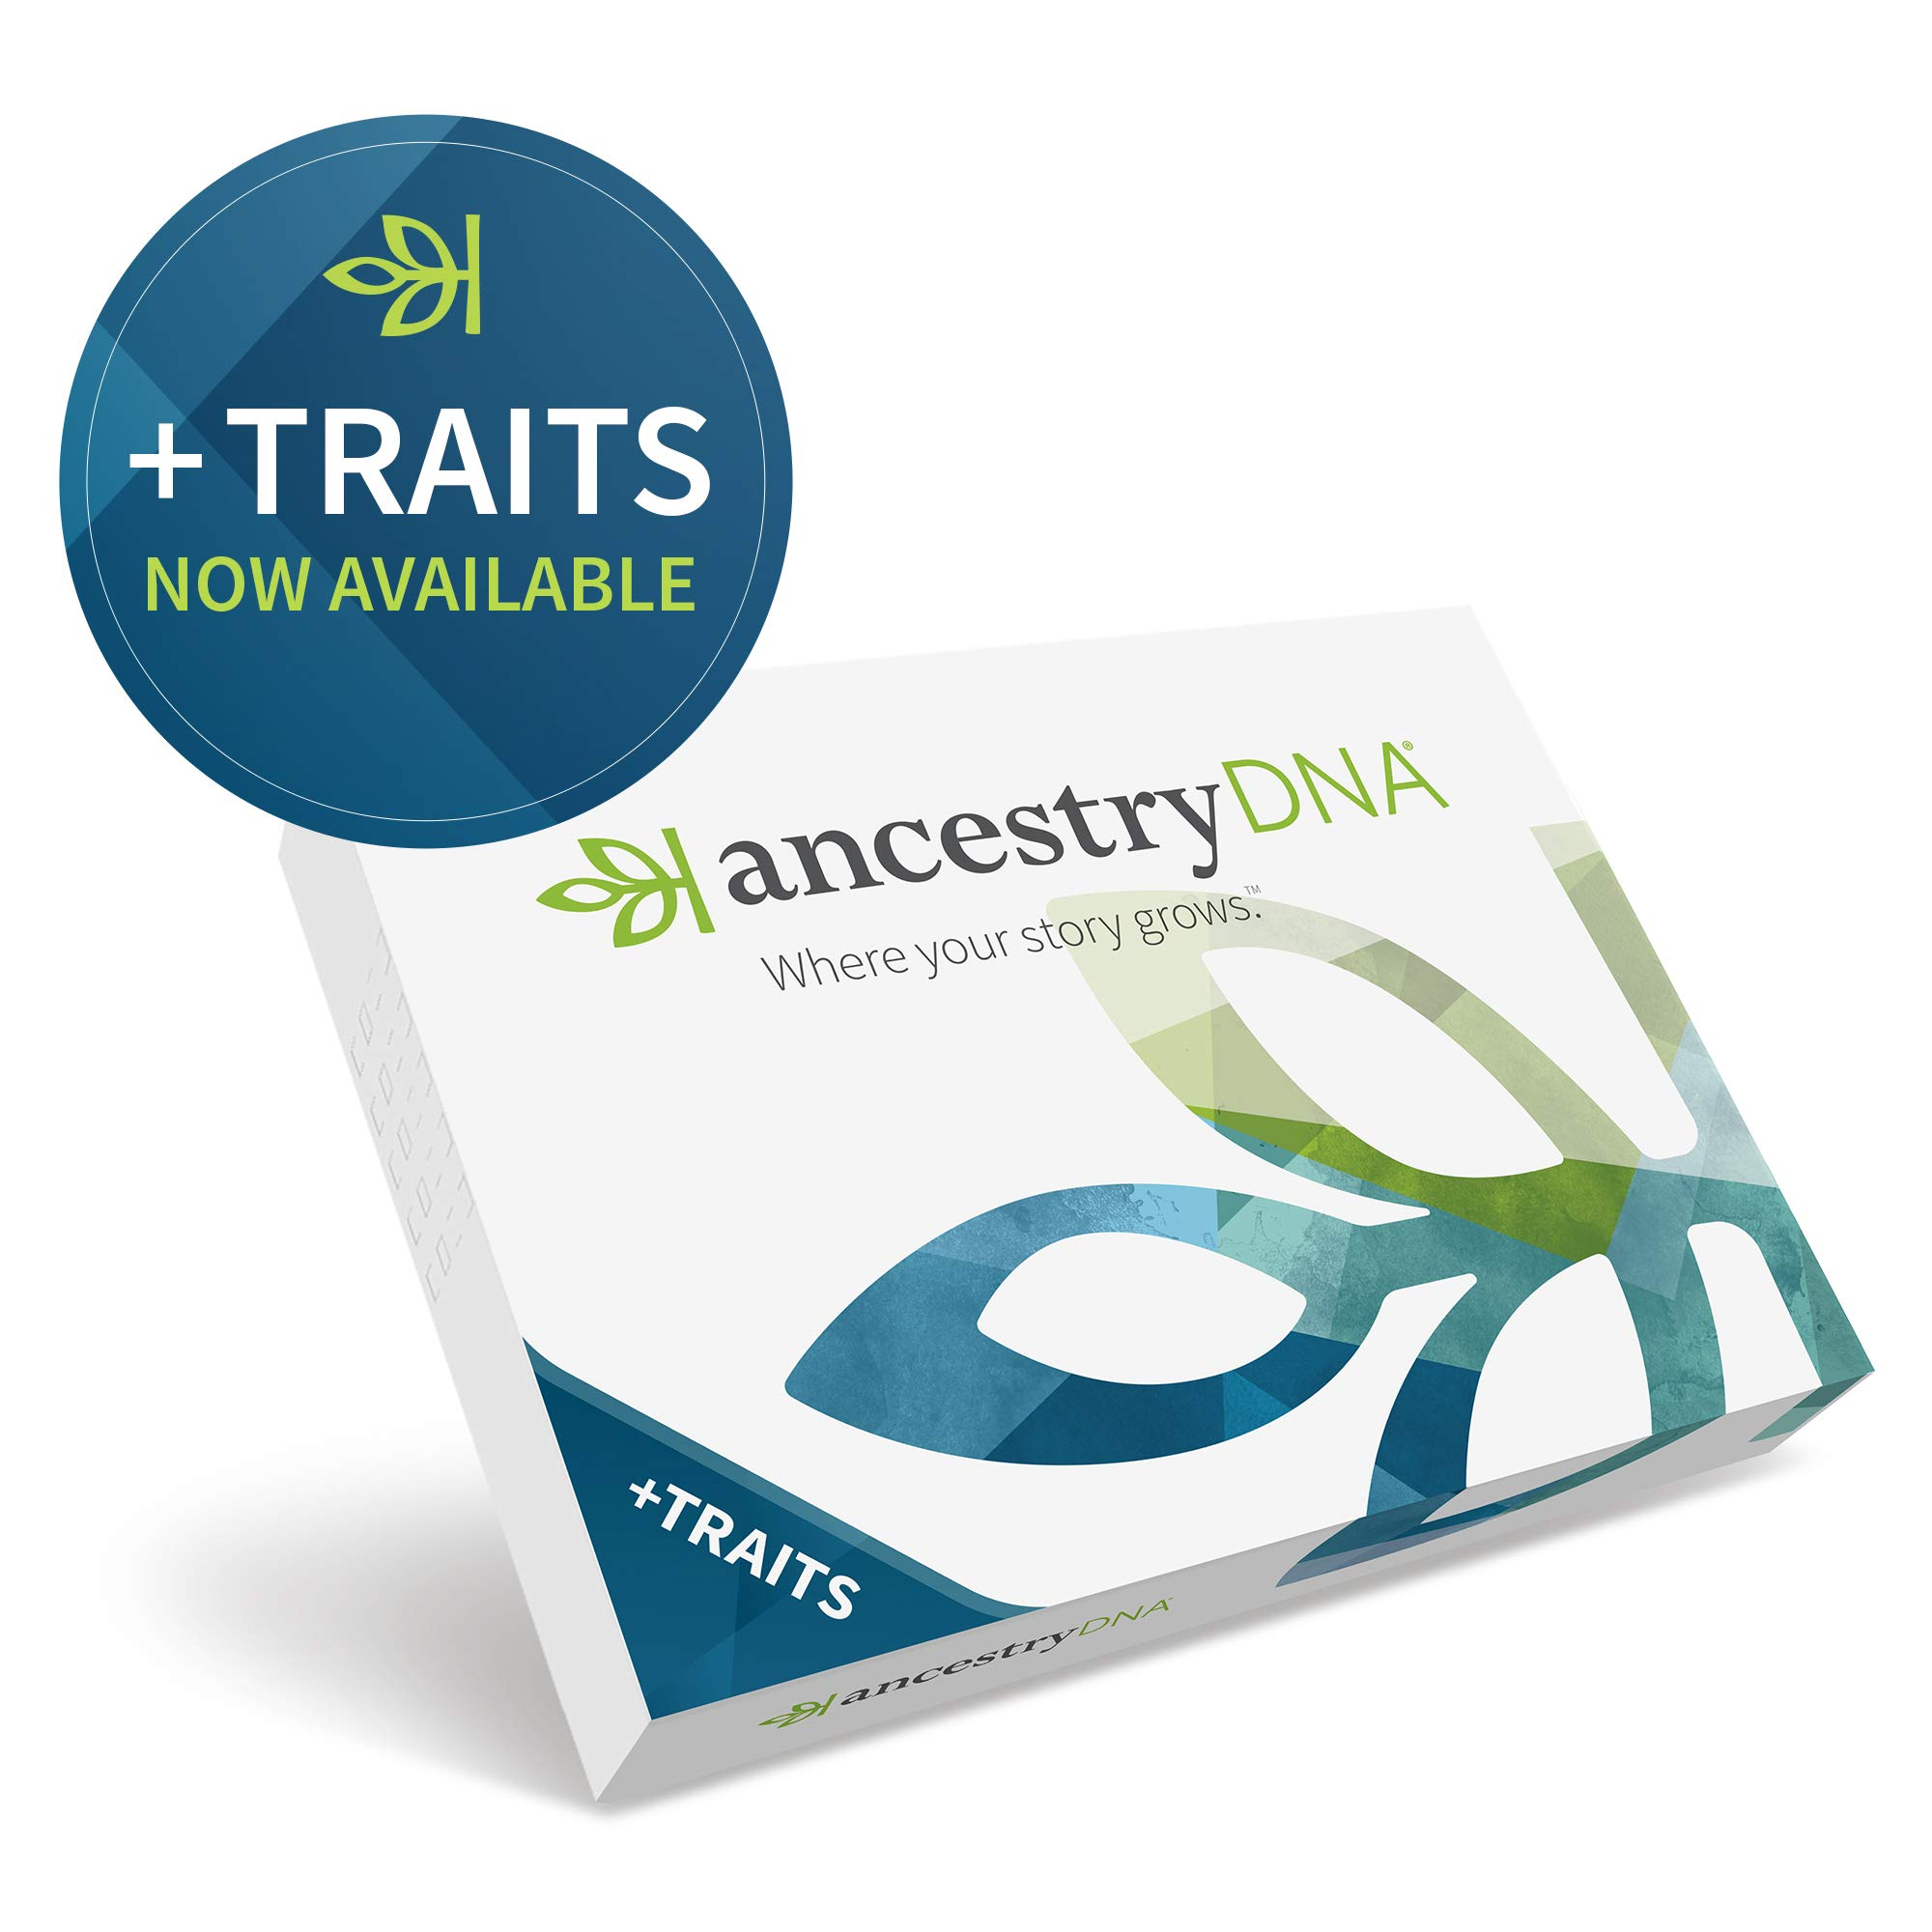 AncestryDNA: Genetic Ethnicity + Traits Test